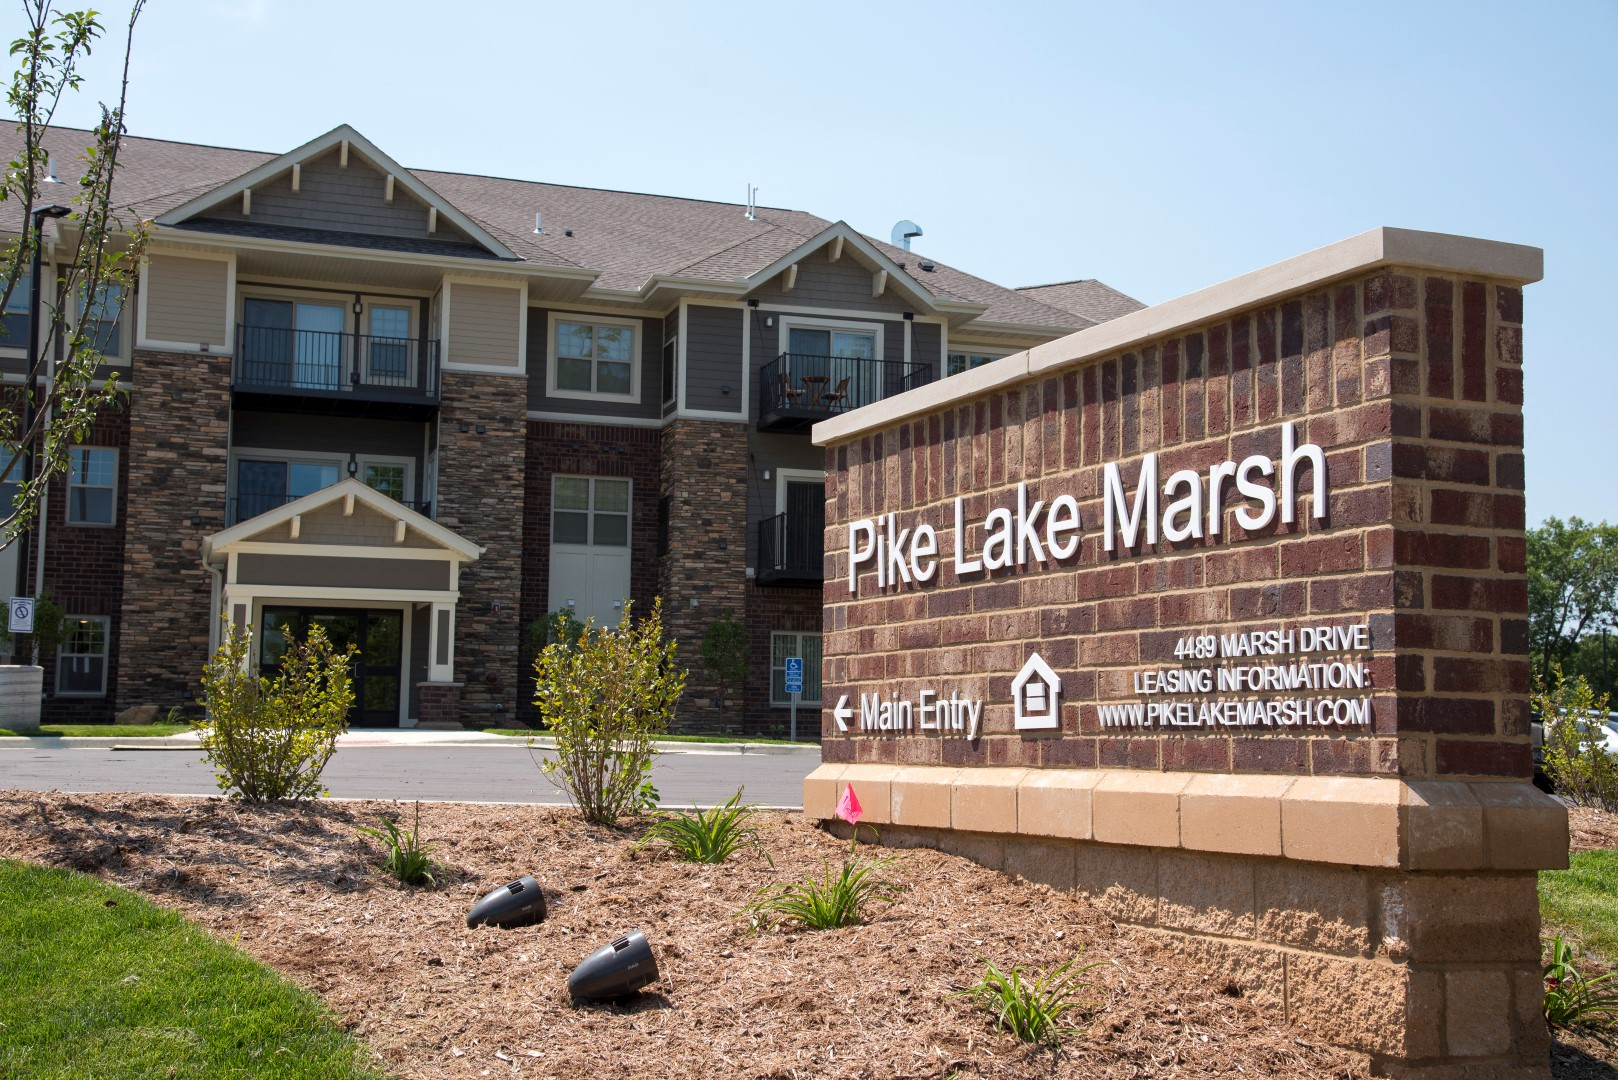 Pike Lake Marsh Apartments Exterior Sign